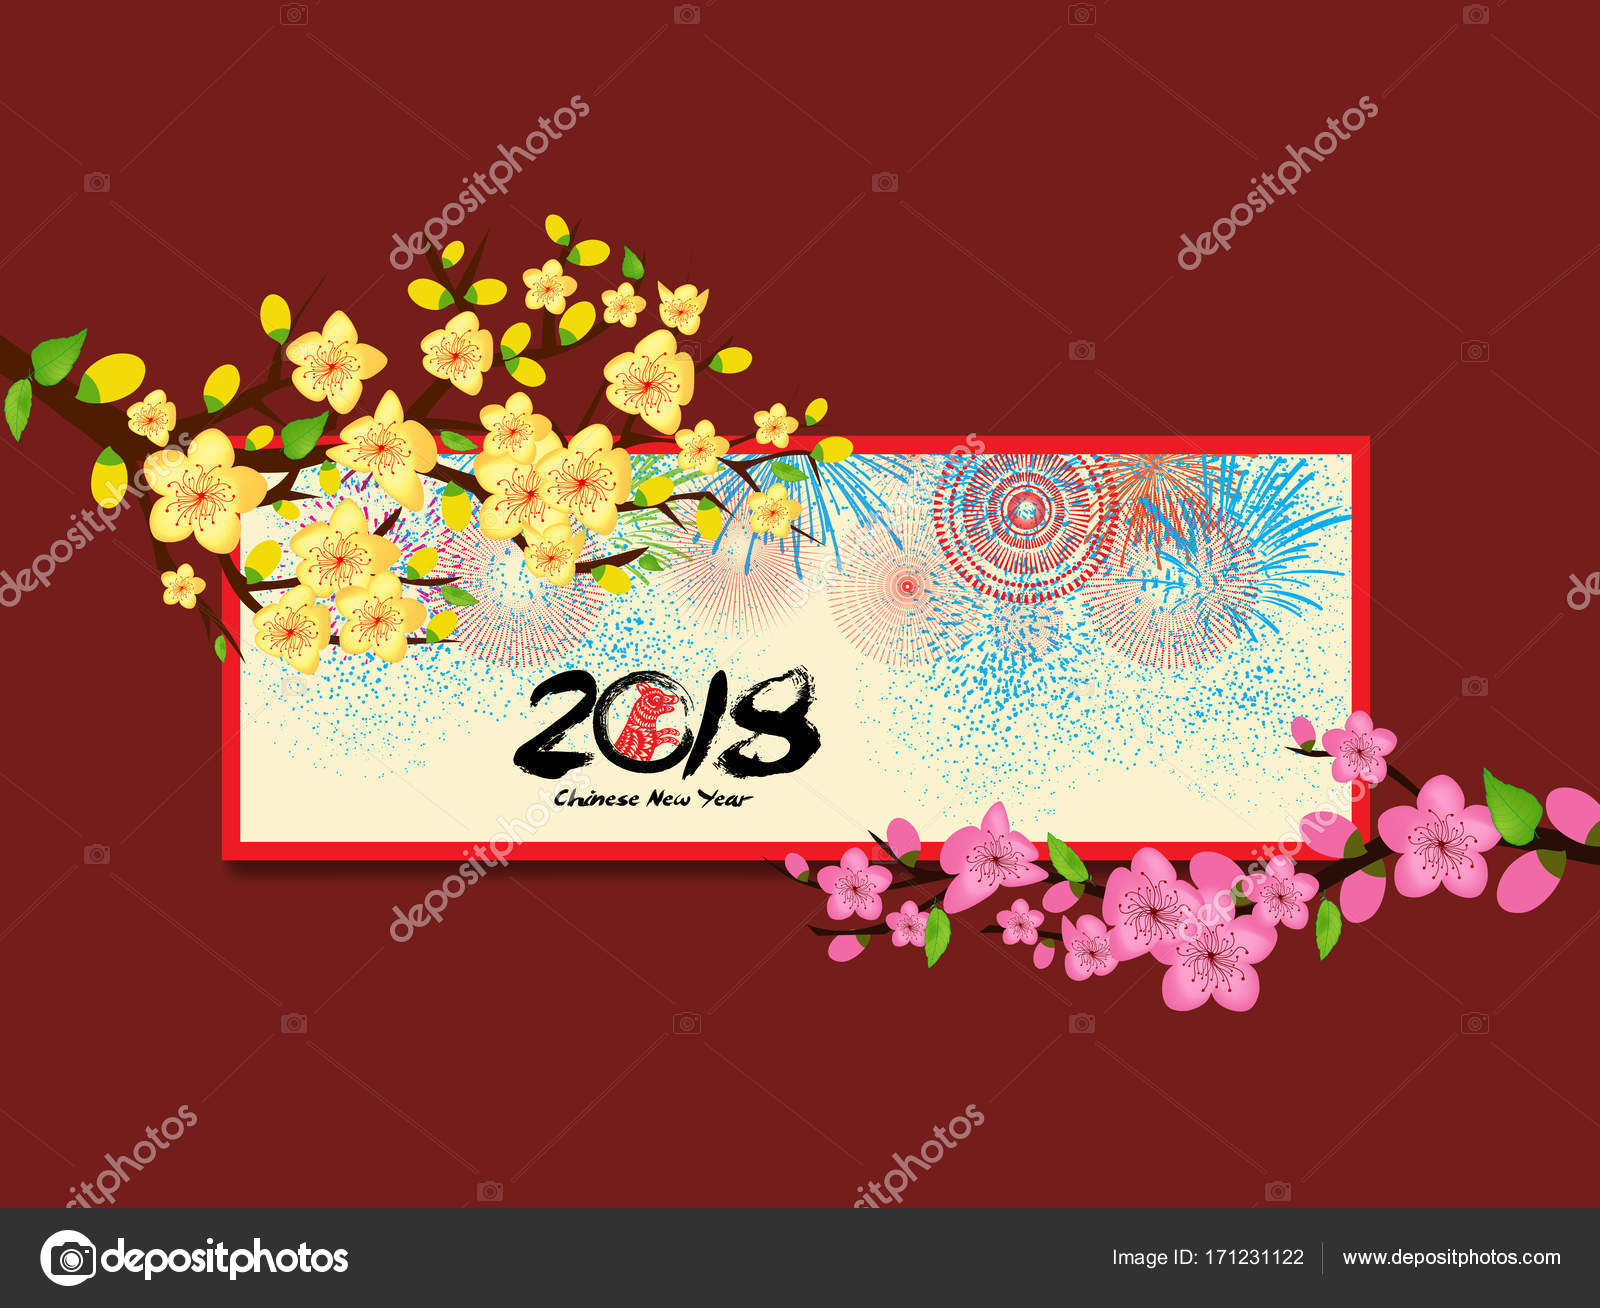 Happy new year vietnamese new year lunar new year 2018 stock happy new year vietnamese new year lunar new year 2018 stock vector m4hsunfo